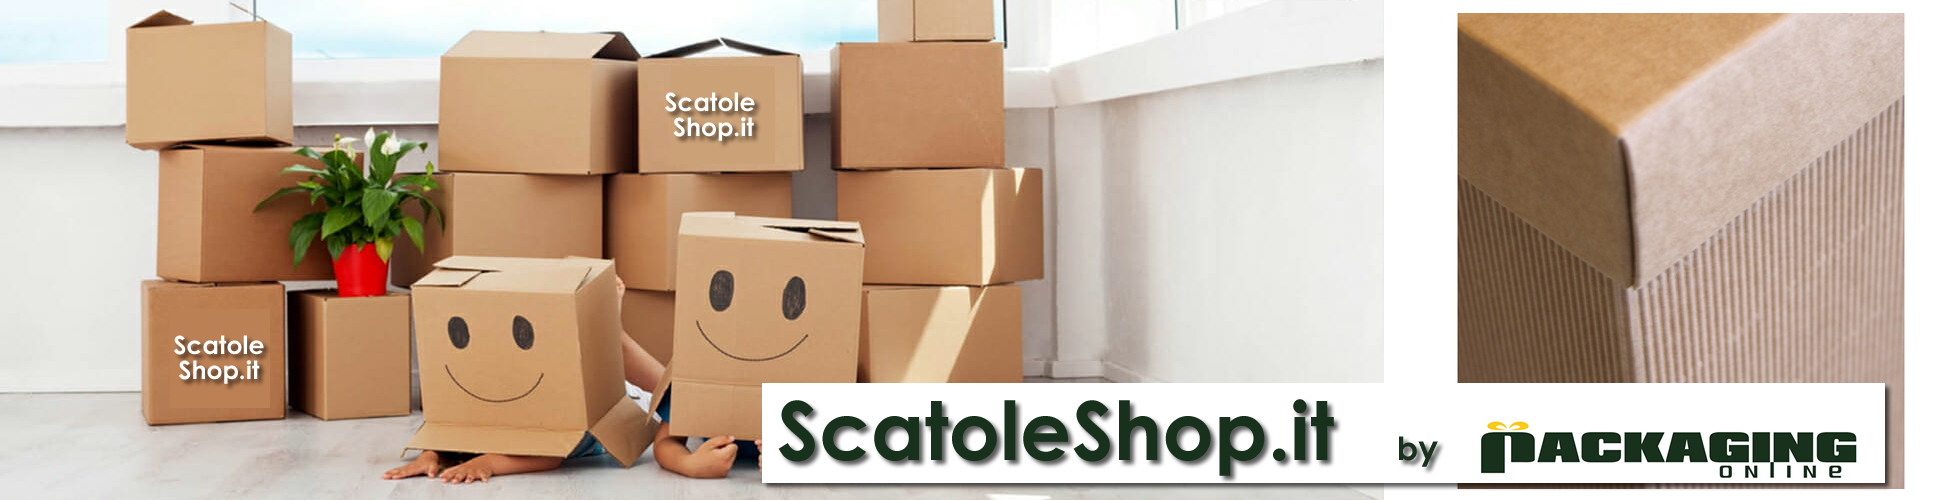 scatoleshop